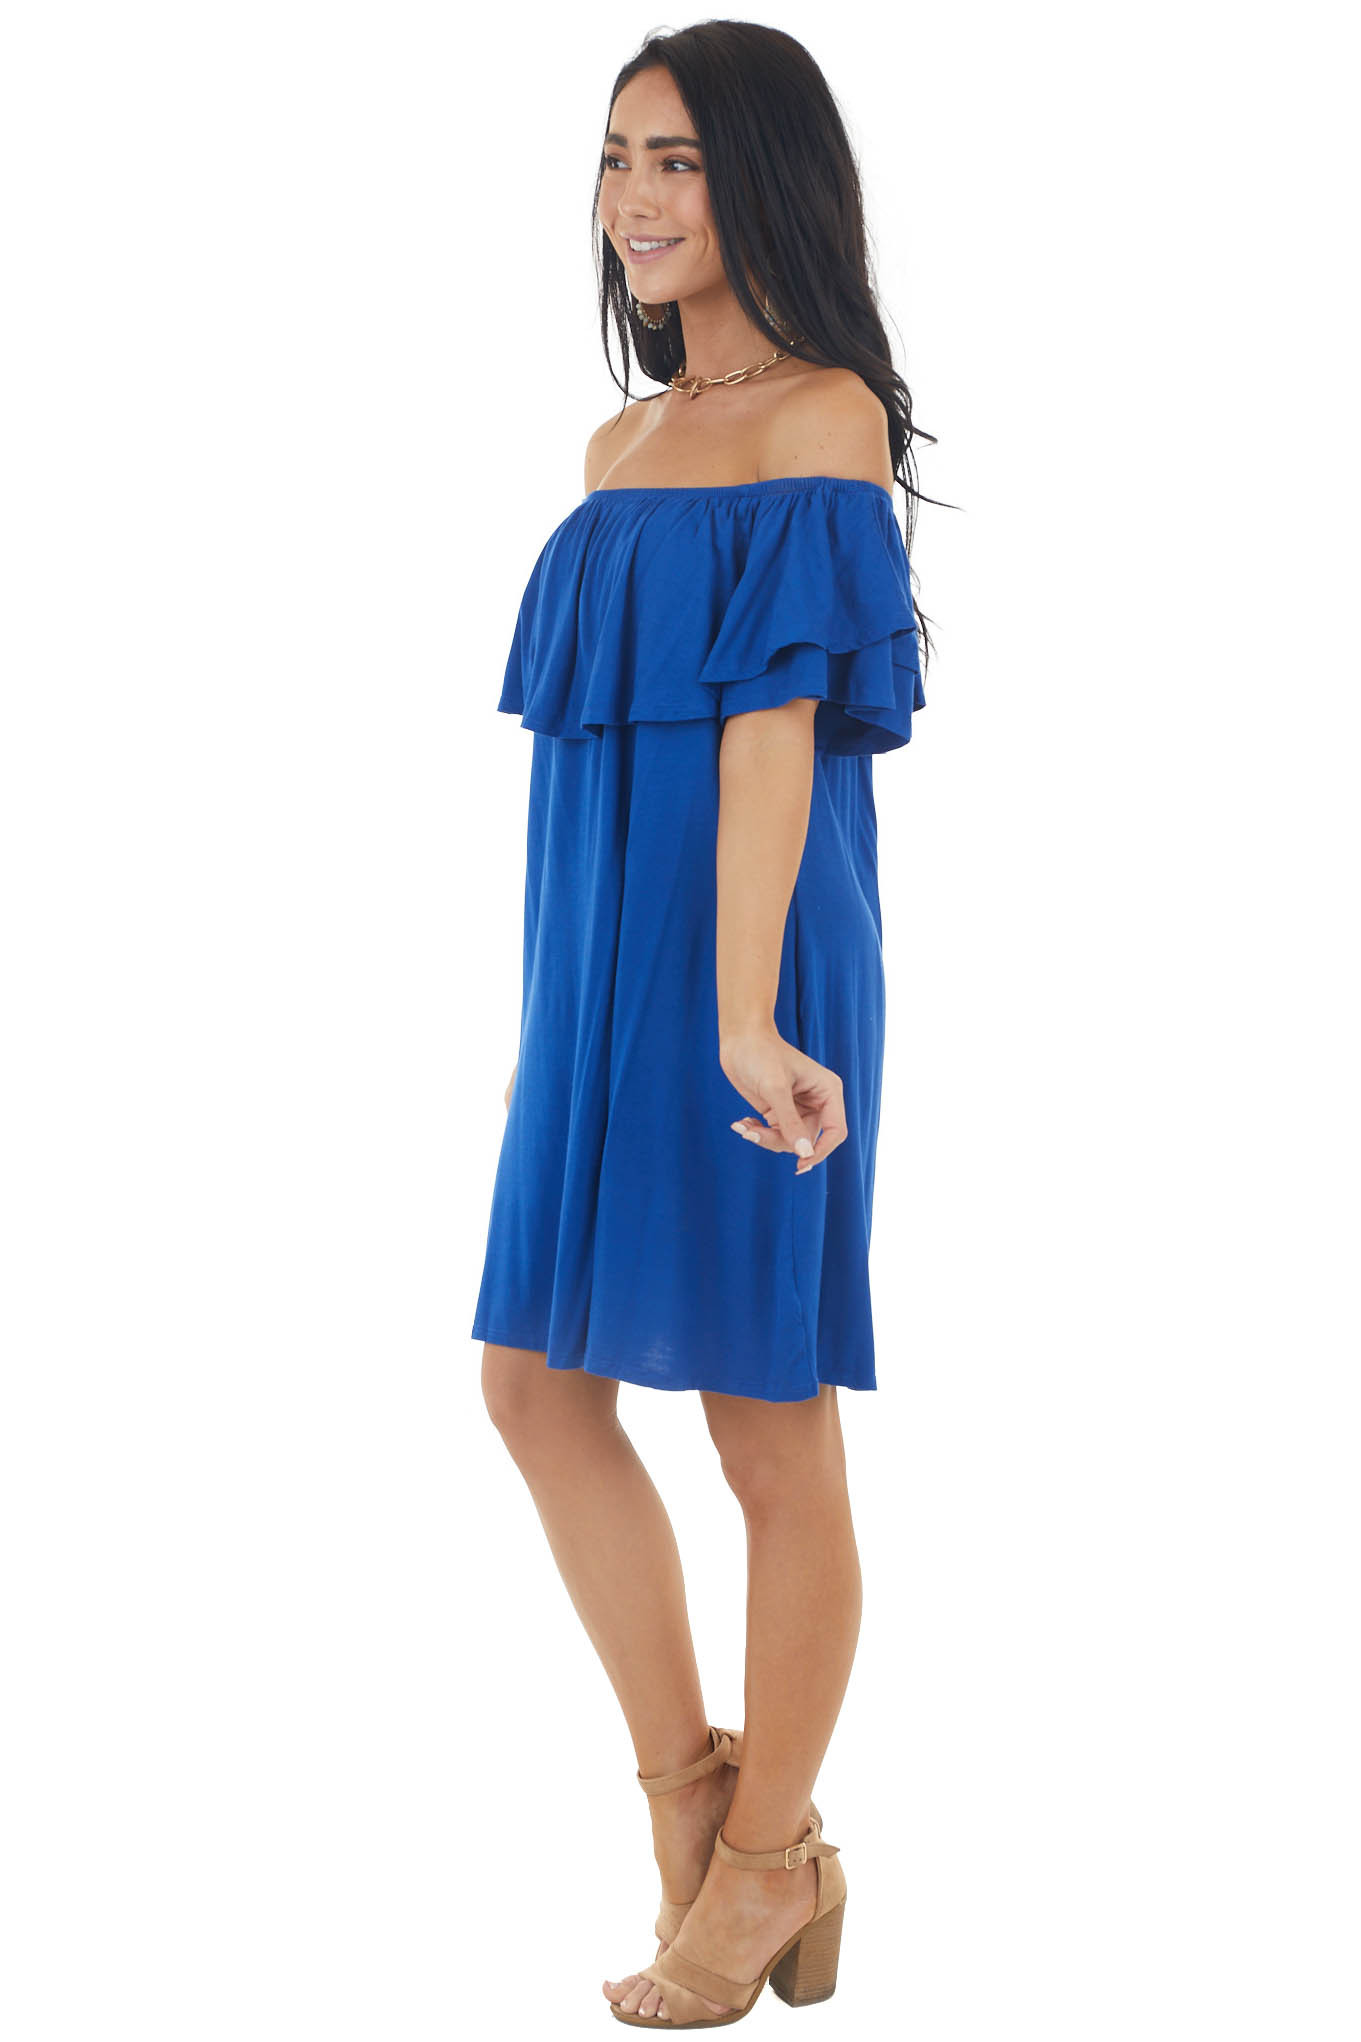 Royal Blue Off the Shoulder Mini Dress with Ruffle Overlay